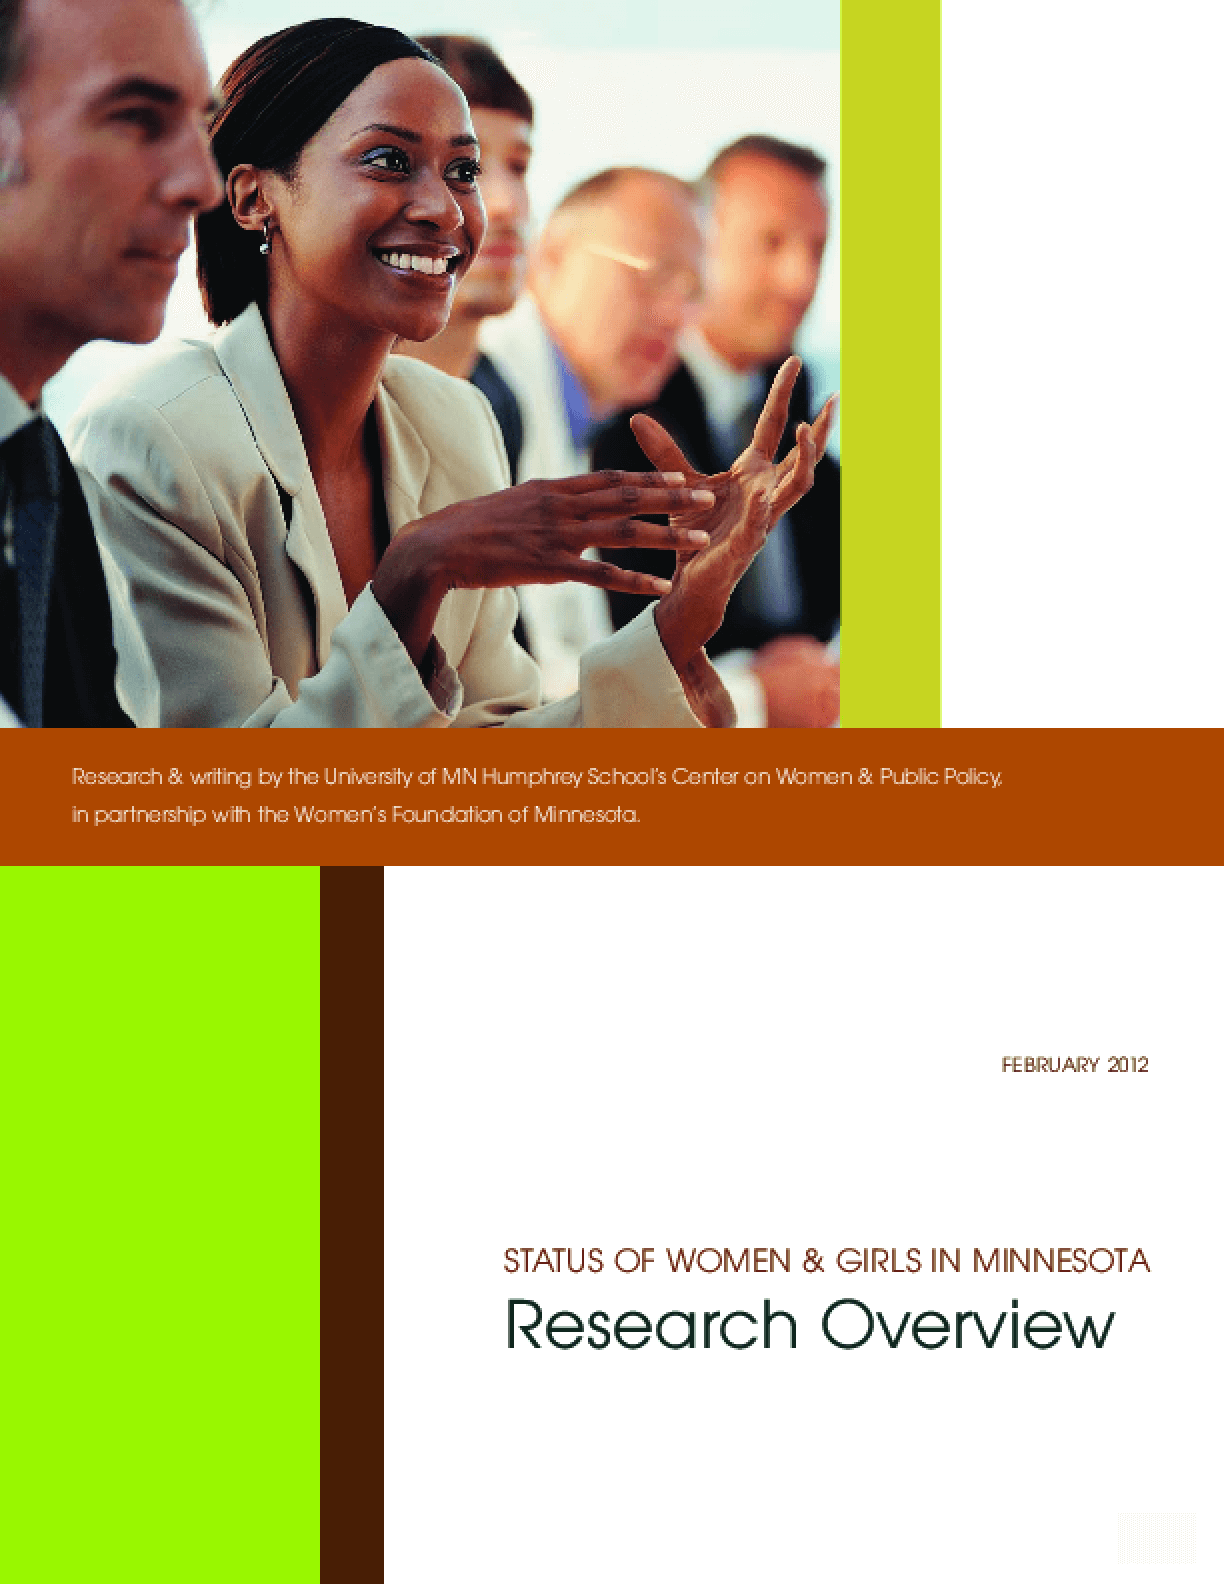 Status of Women & Girls in Minnesota Research Overview